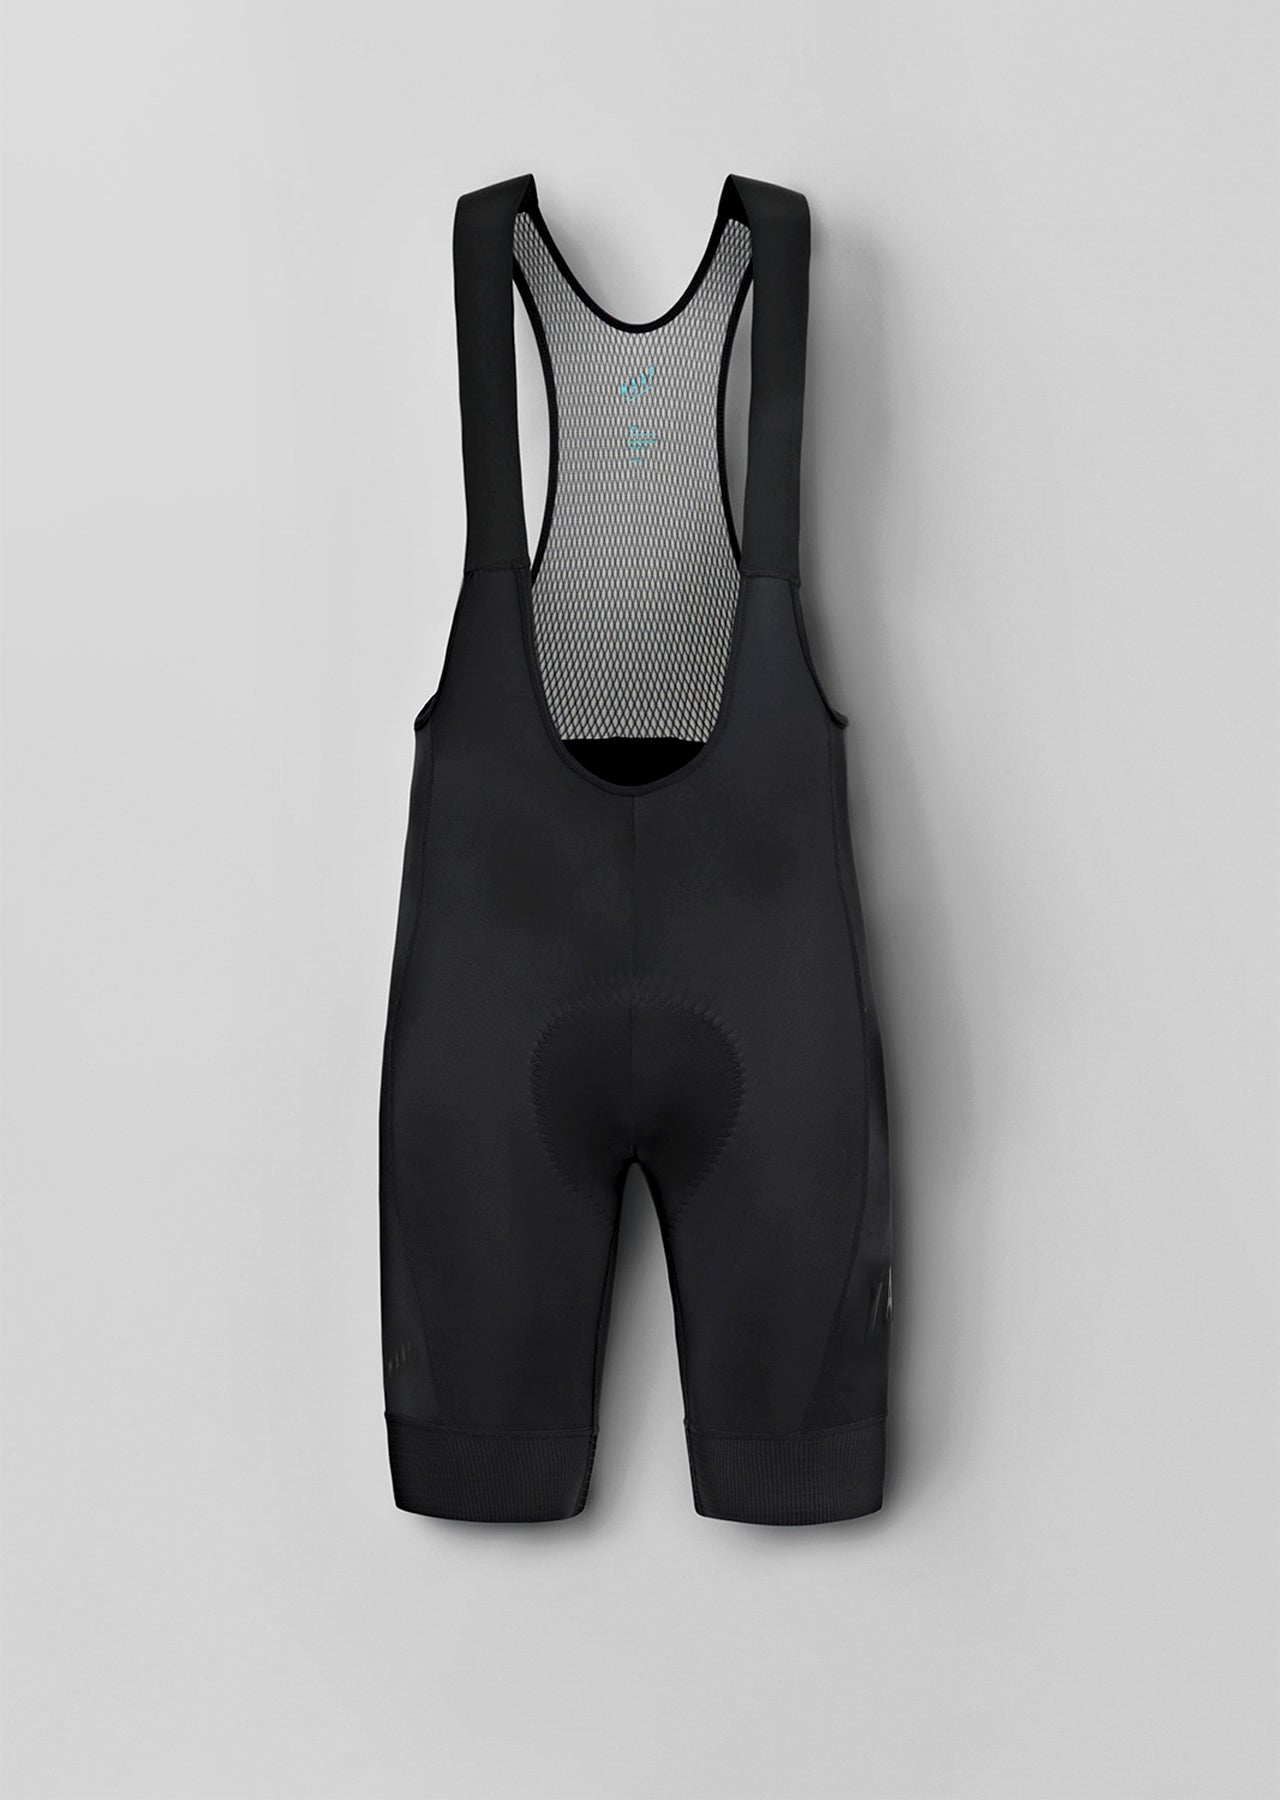 Team Bib Short 3.0